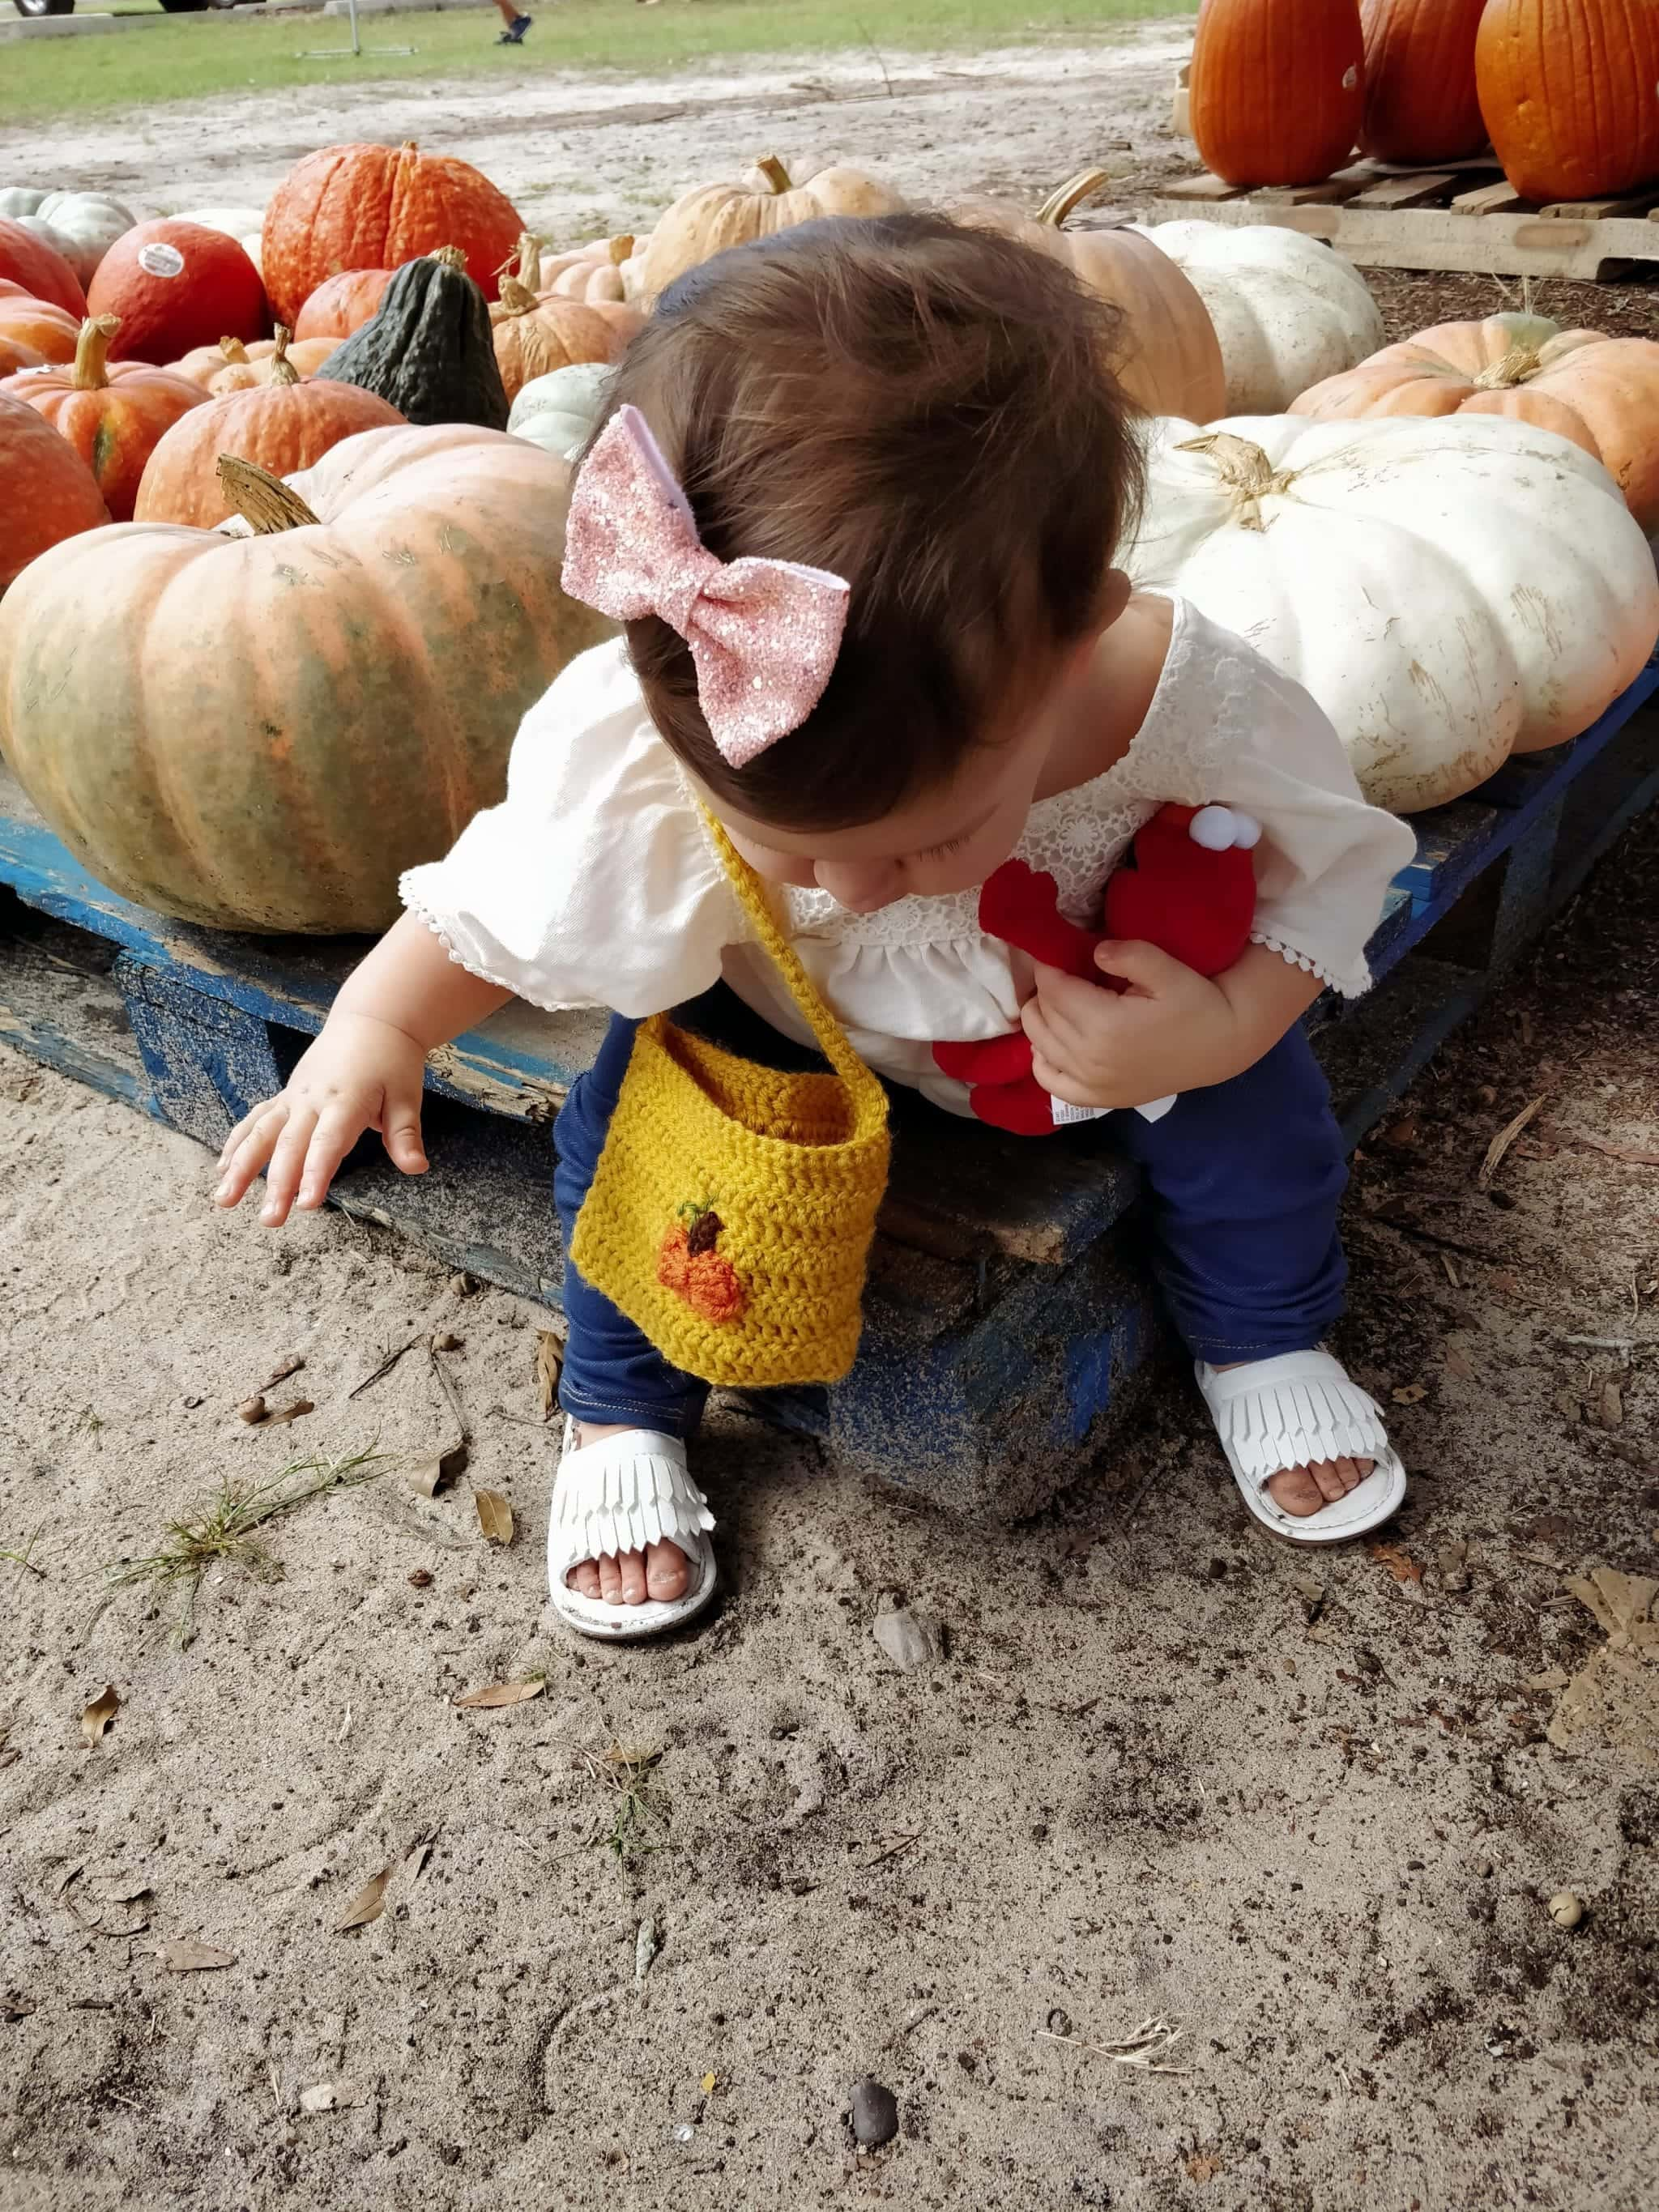 Toddler wearing a yellow handbag while sitting down at a pumpkin patch